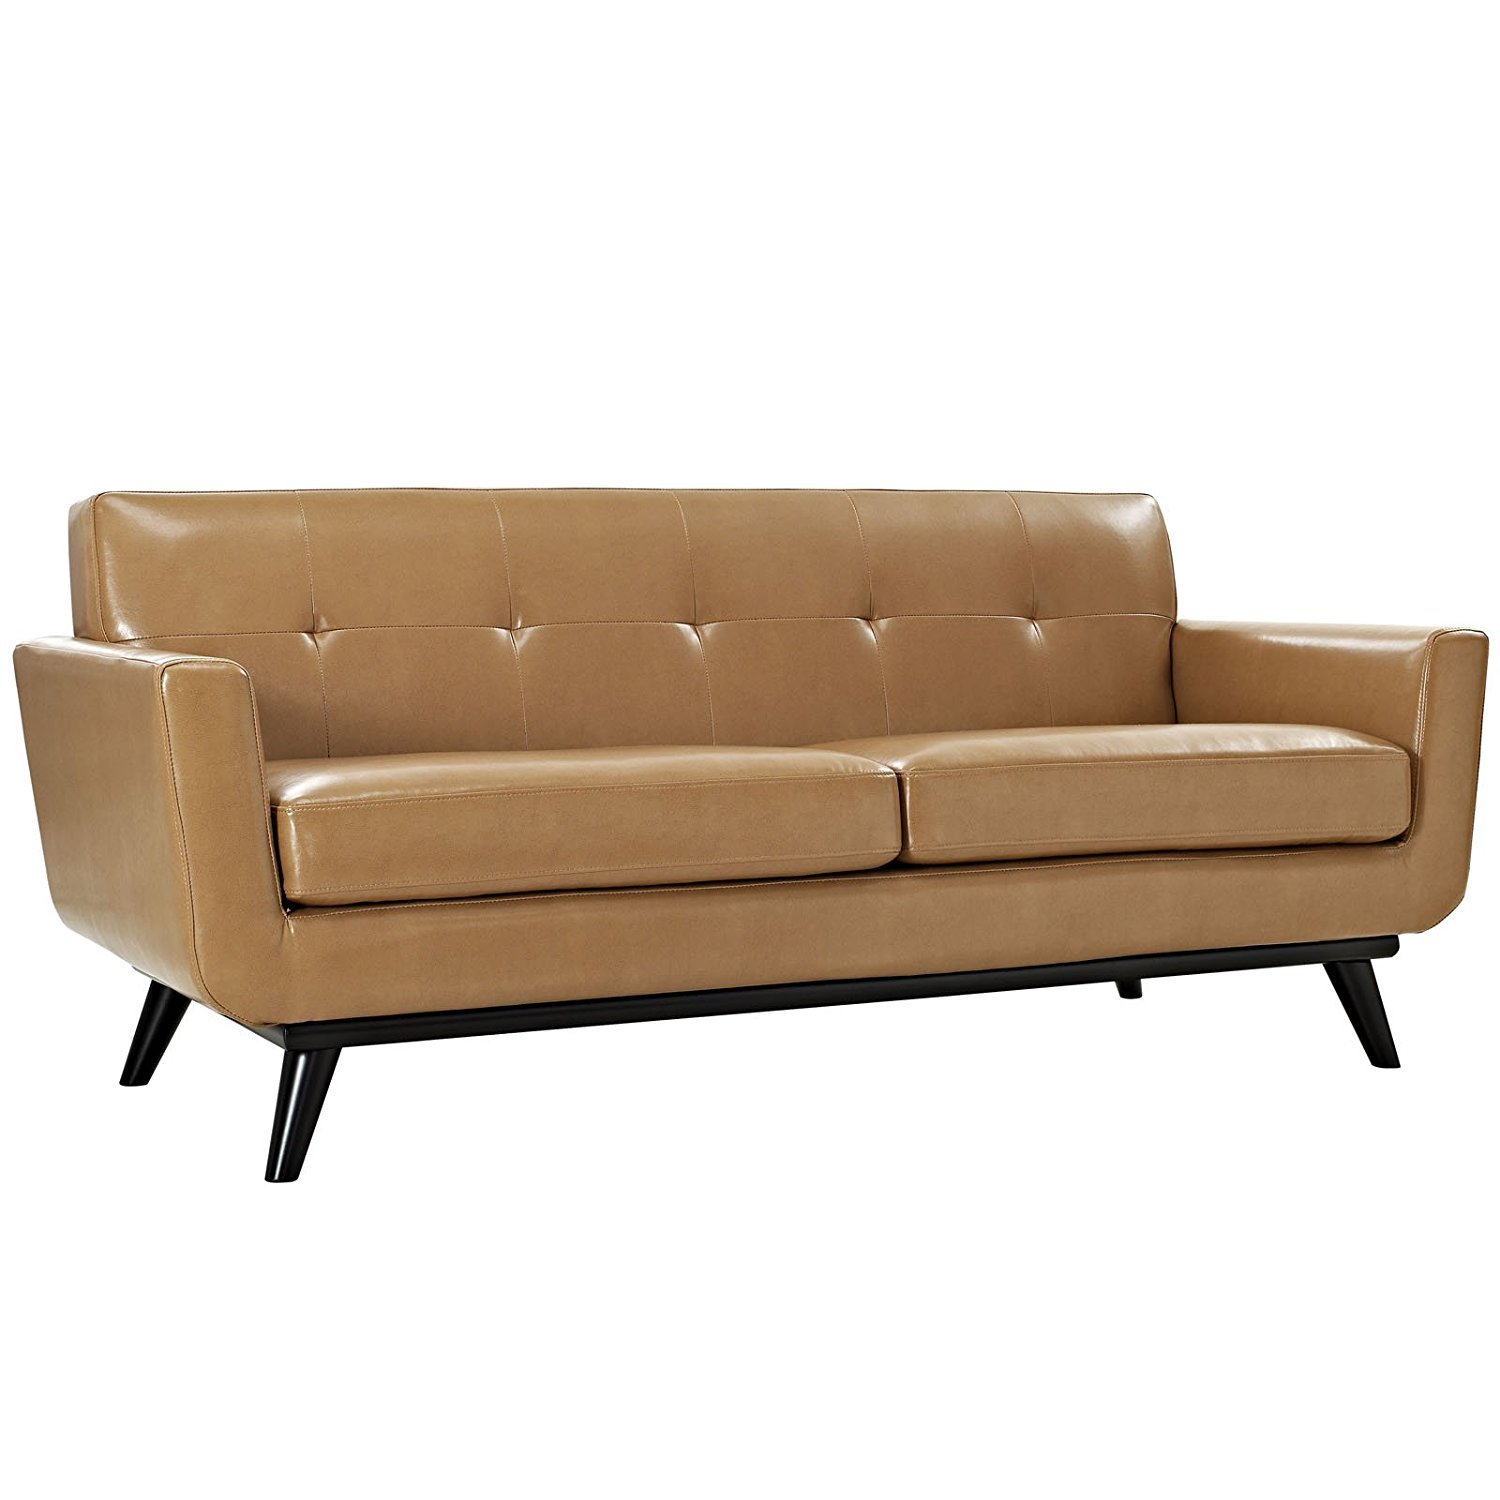 Light Tan Leather Couch Home Furniture Design